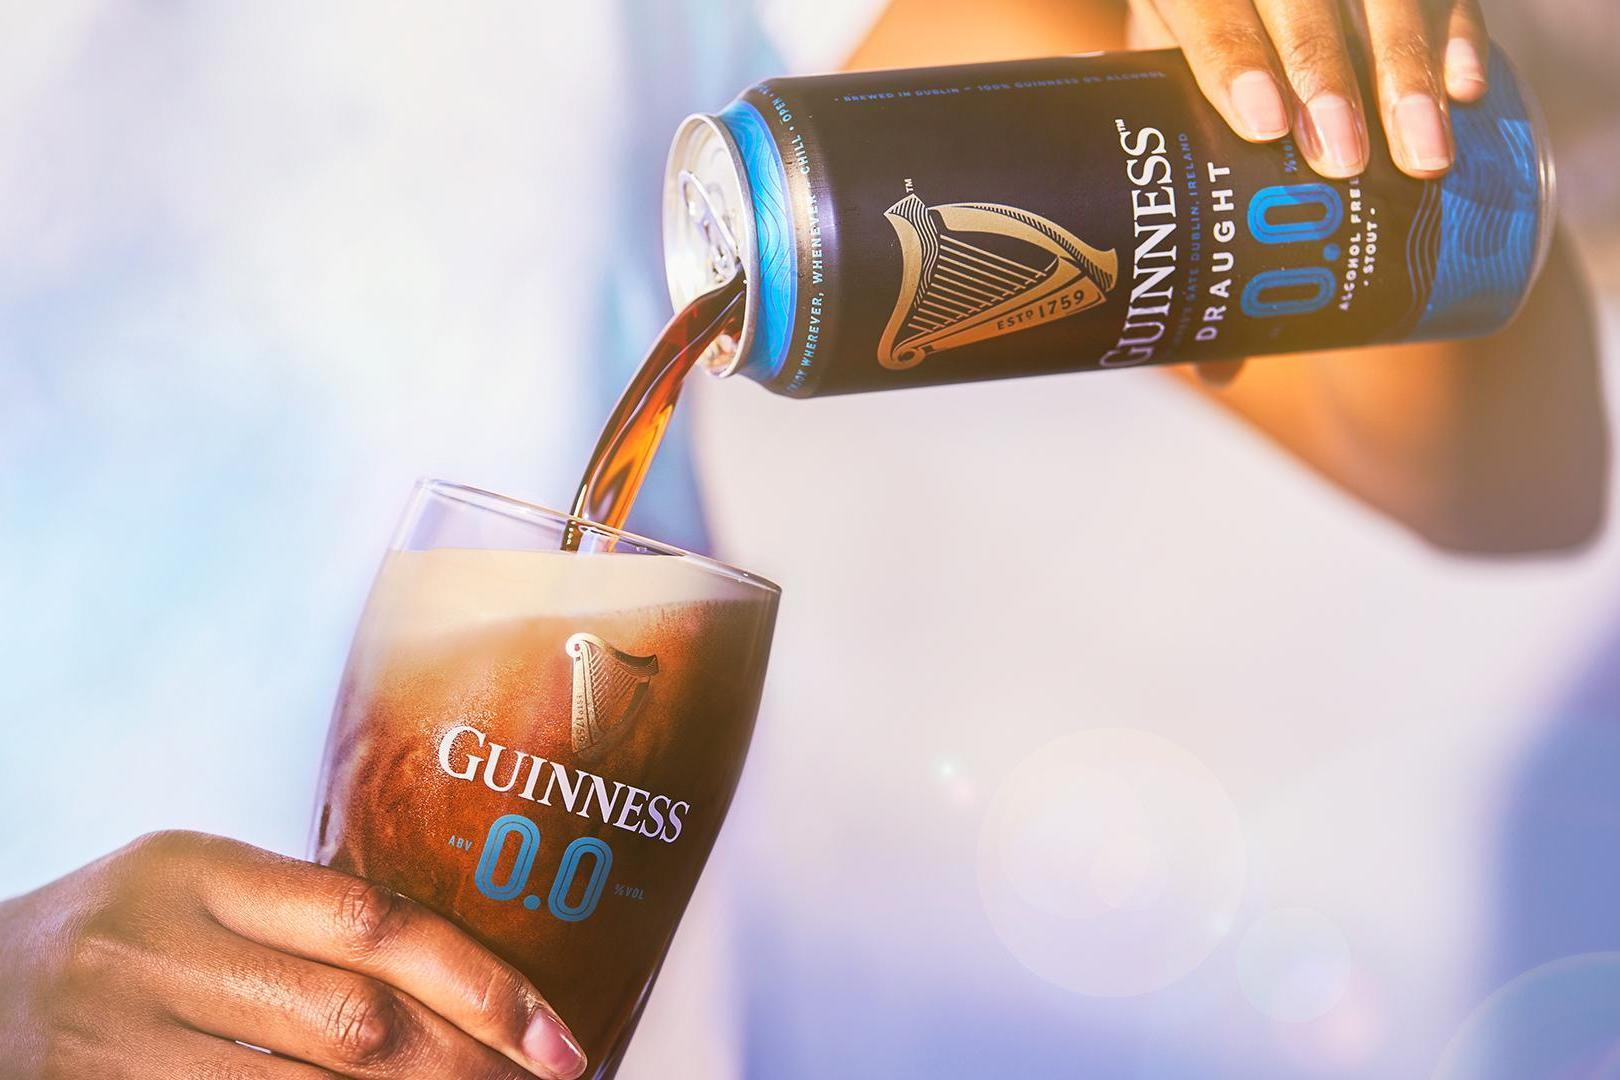 Guinness 0.0: Irish Giant Launches Alcohol-free Stout photo